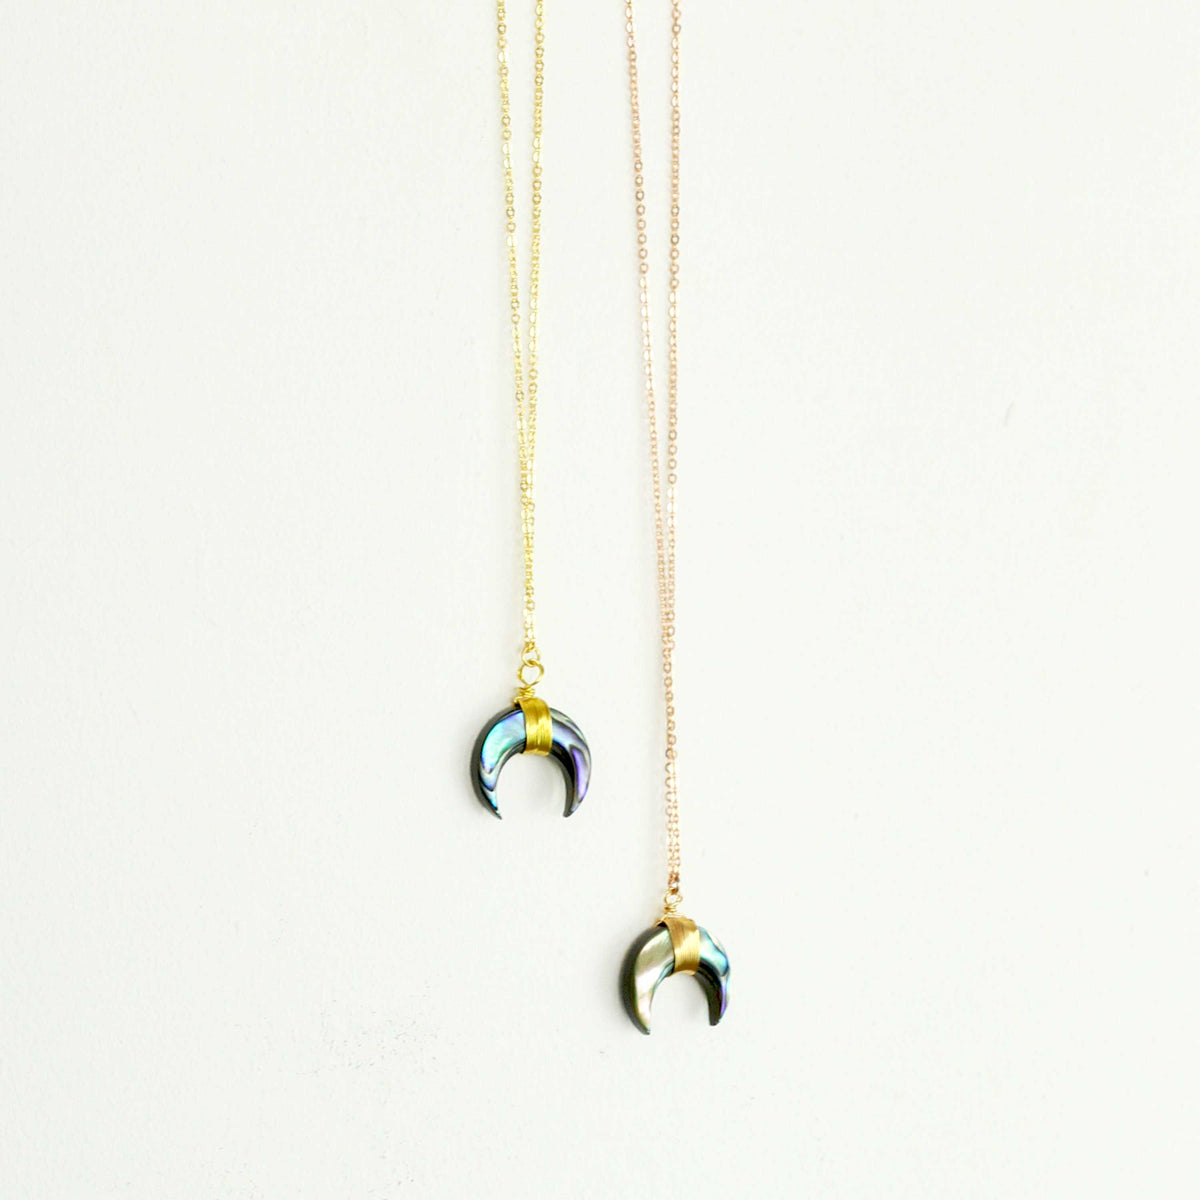 "Double Horn Moon Crescent Abalone shell Pendant Necklace With 16"" 925 Sterling Silver 1.2mm O Chain - worthtryit.com"